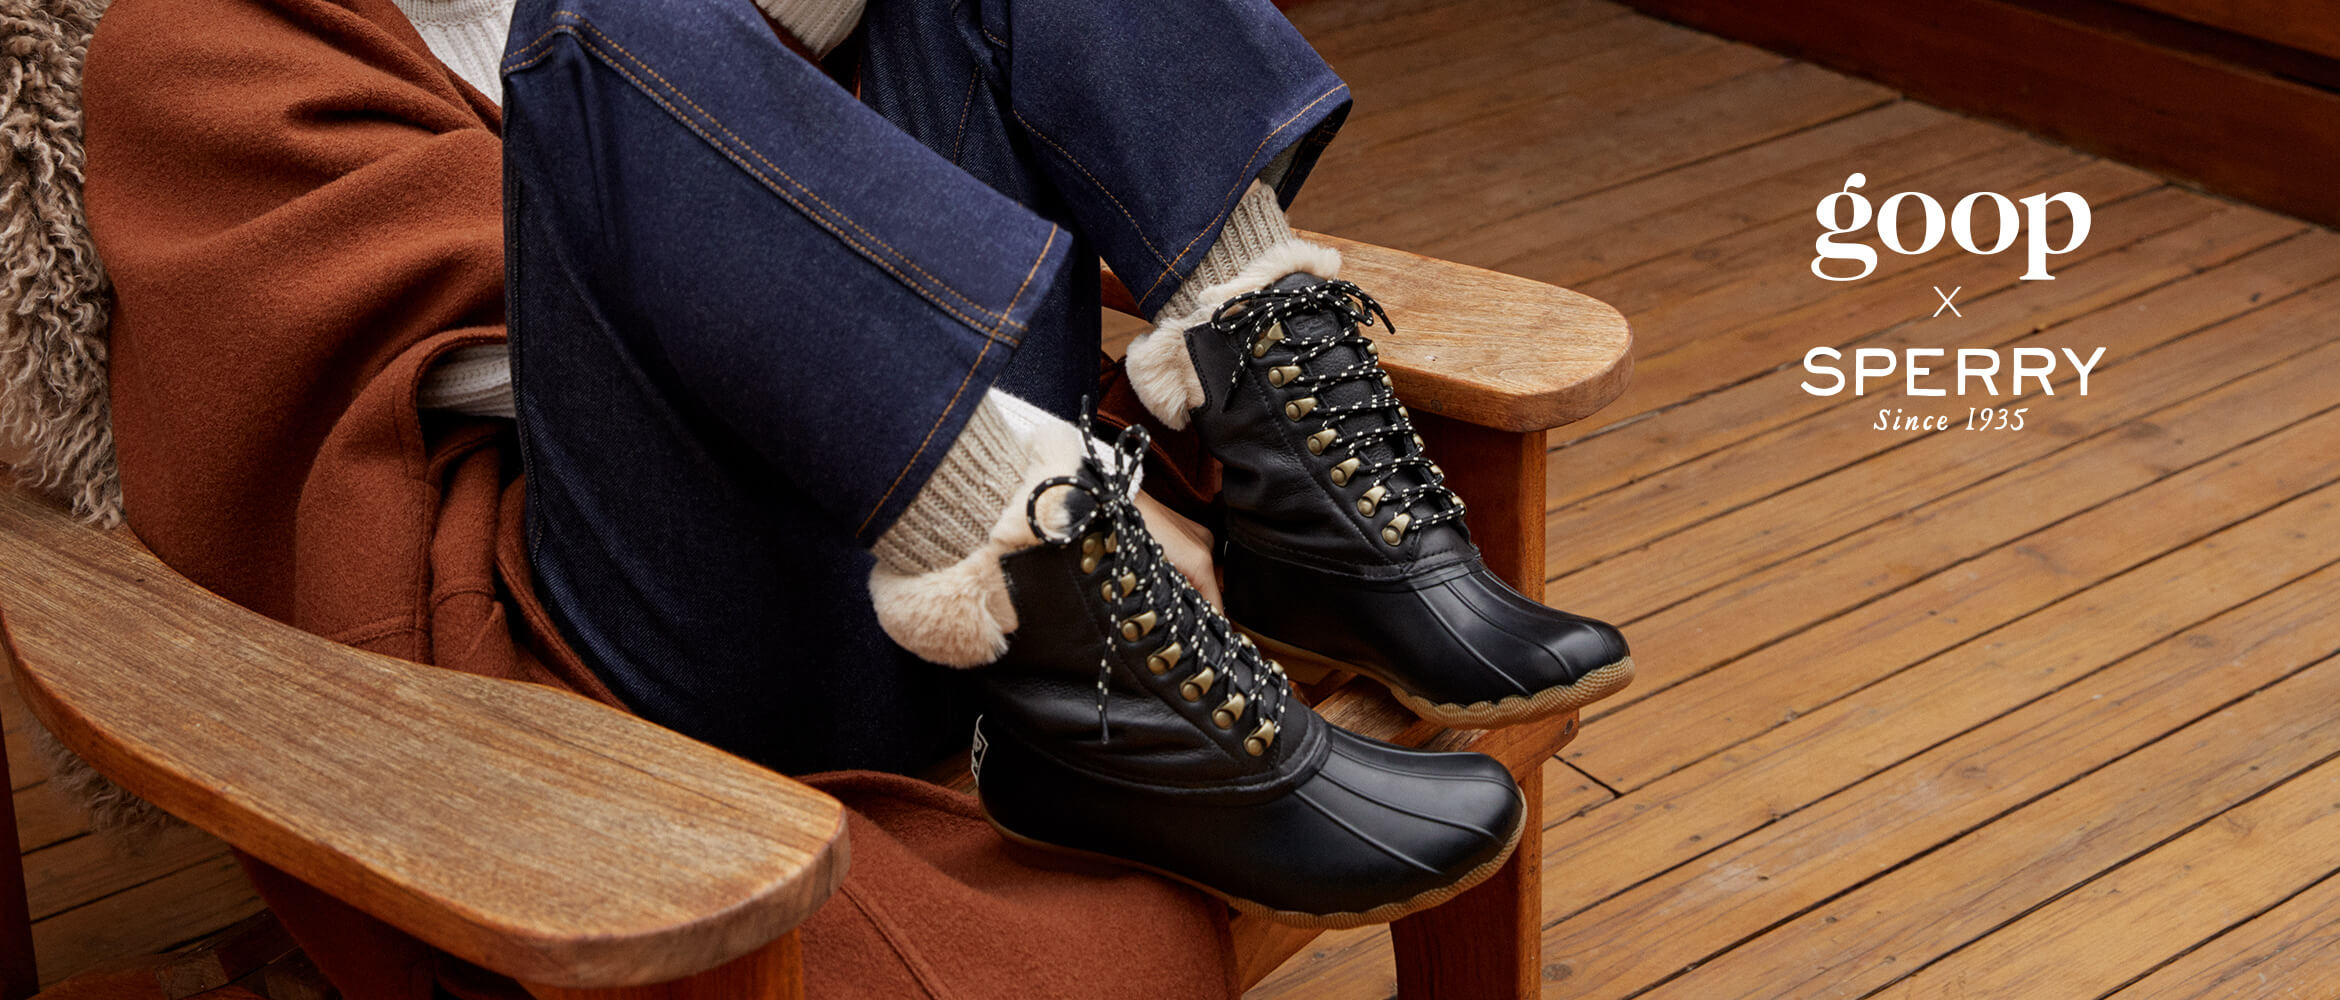 A person sitting in a wooden chair pulls up their feet wearing a pair of black goop x Sperry boots.